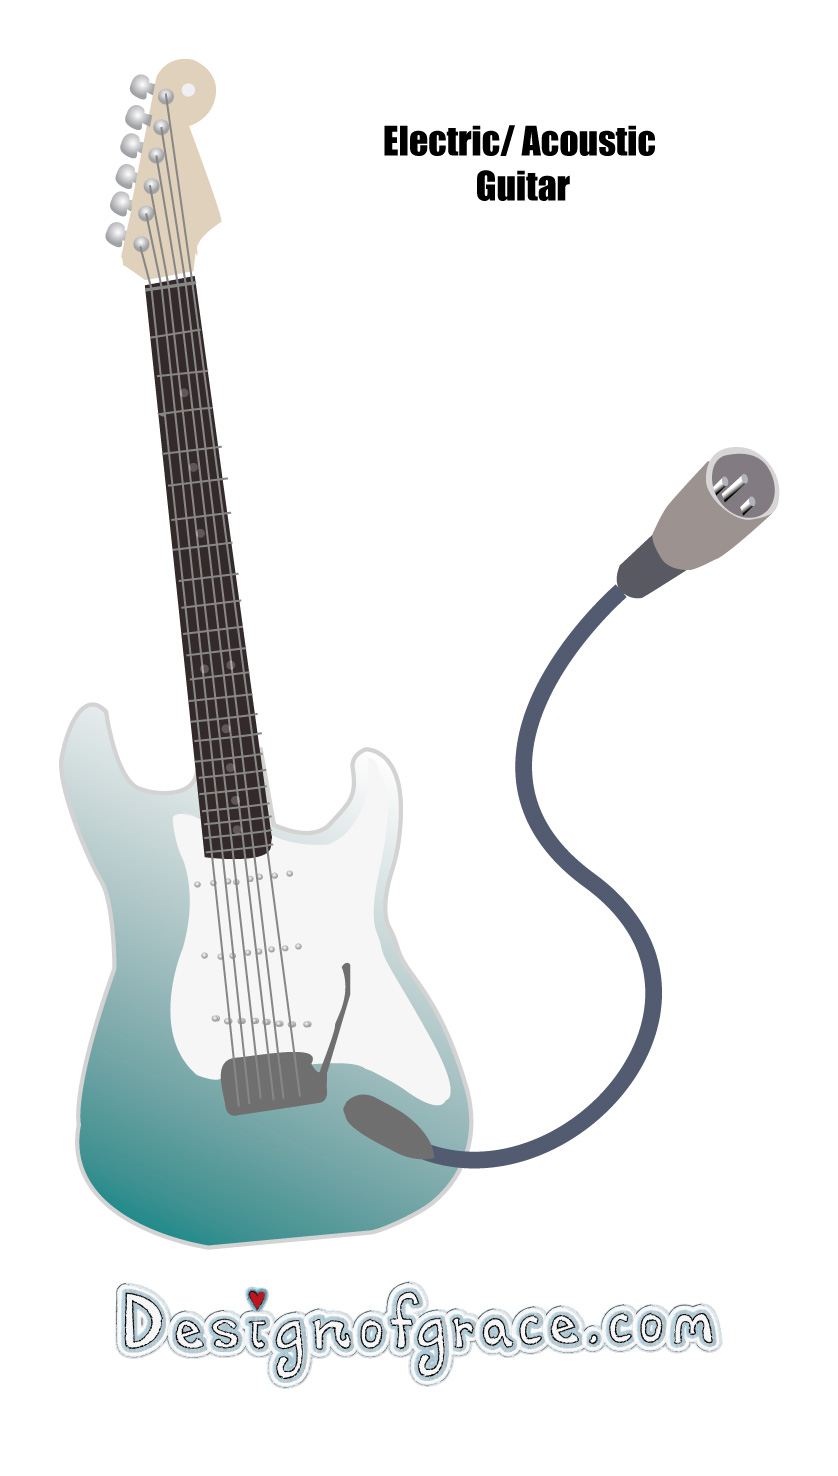 Illustration of a Electric Guitar for a home studio setup